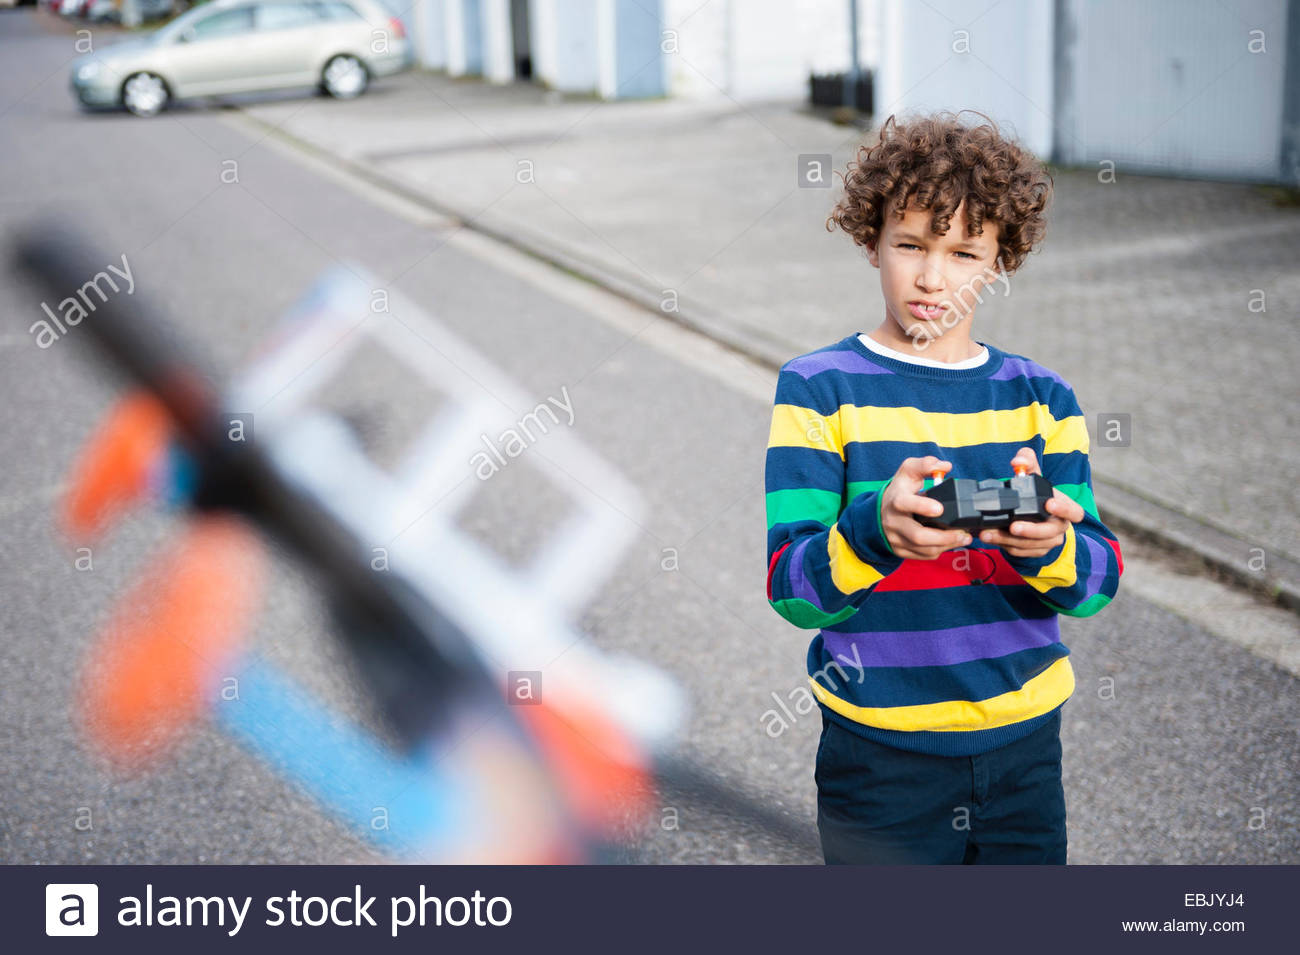 Boy playing with flying with radio controlled airplane - Stock Image